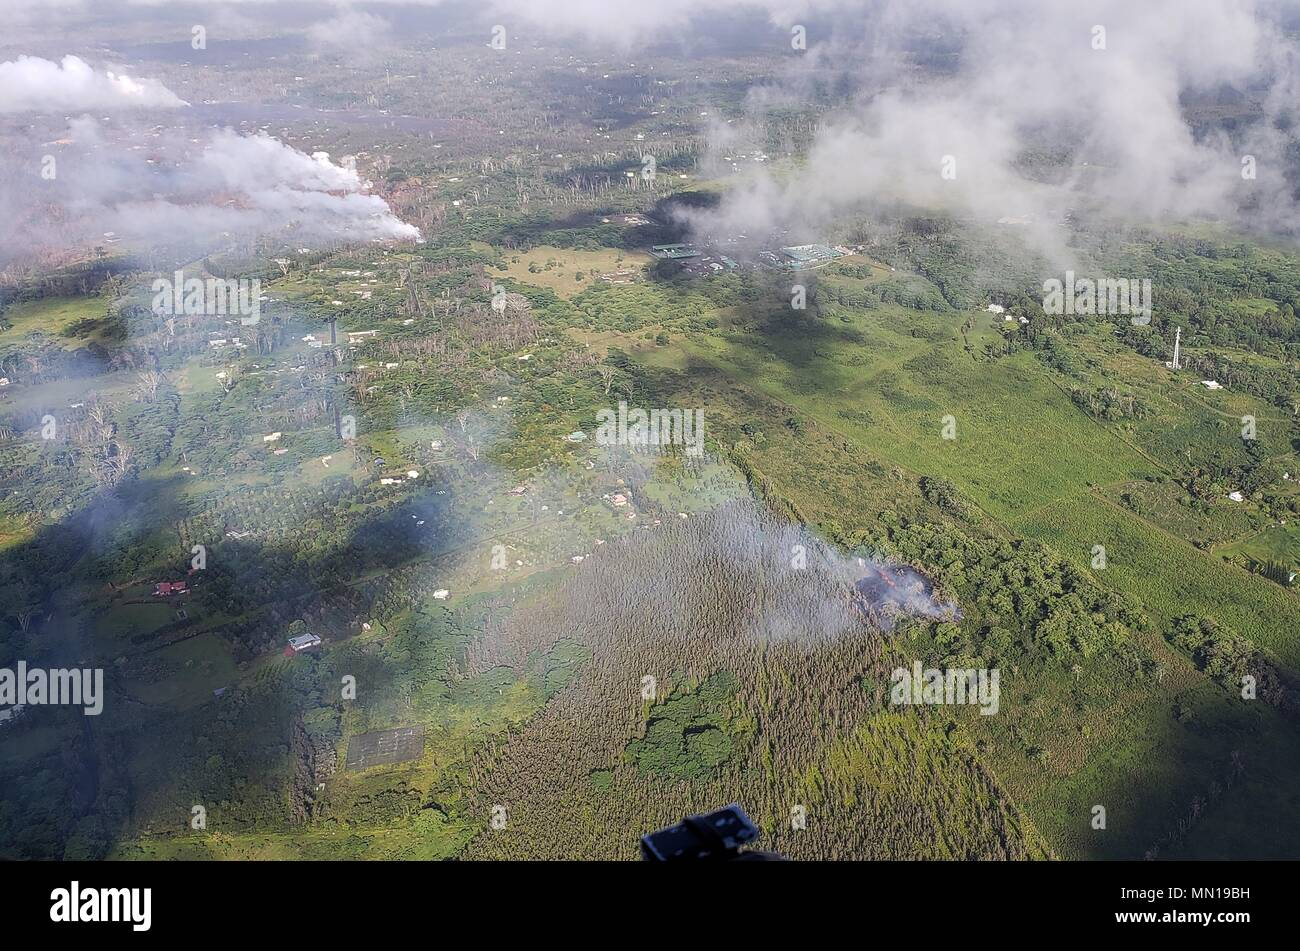 Hawaii, USA 12th May 2018. An aerial view of steam and lava escaping from newly formed fissure 16 from the Kilauea volcano May 12, 2018 in Leilani Estates, Hawaii. The fissure is located 500 meters northeast of the Puna Geothermal Venture site (top right). Credit: Planetpix/Alamy Live News Stock Photo